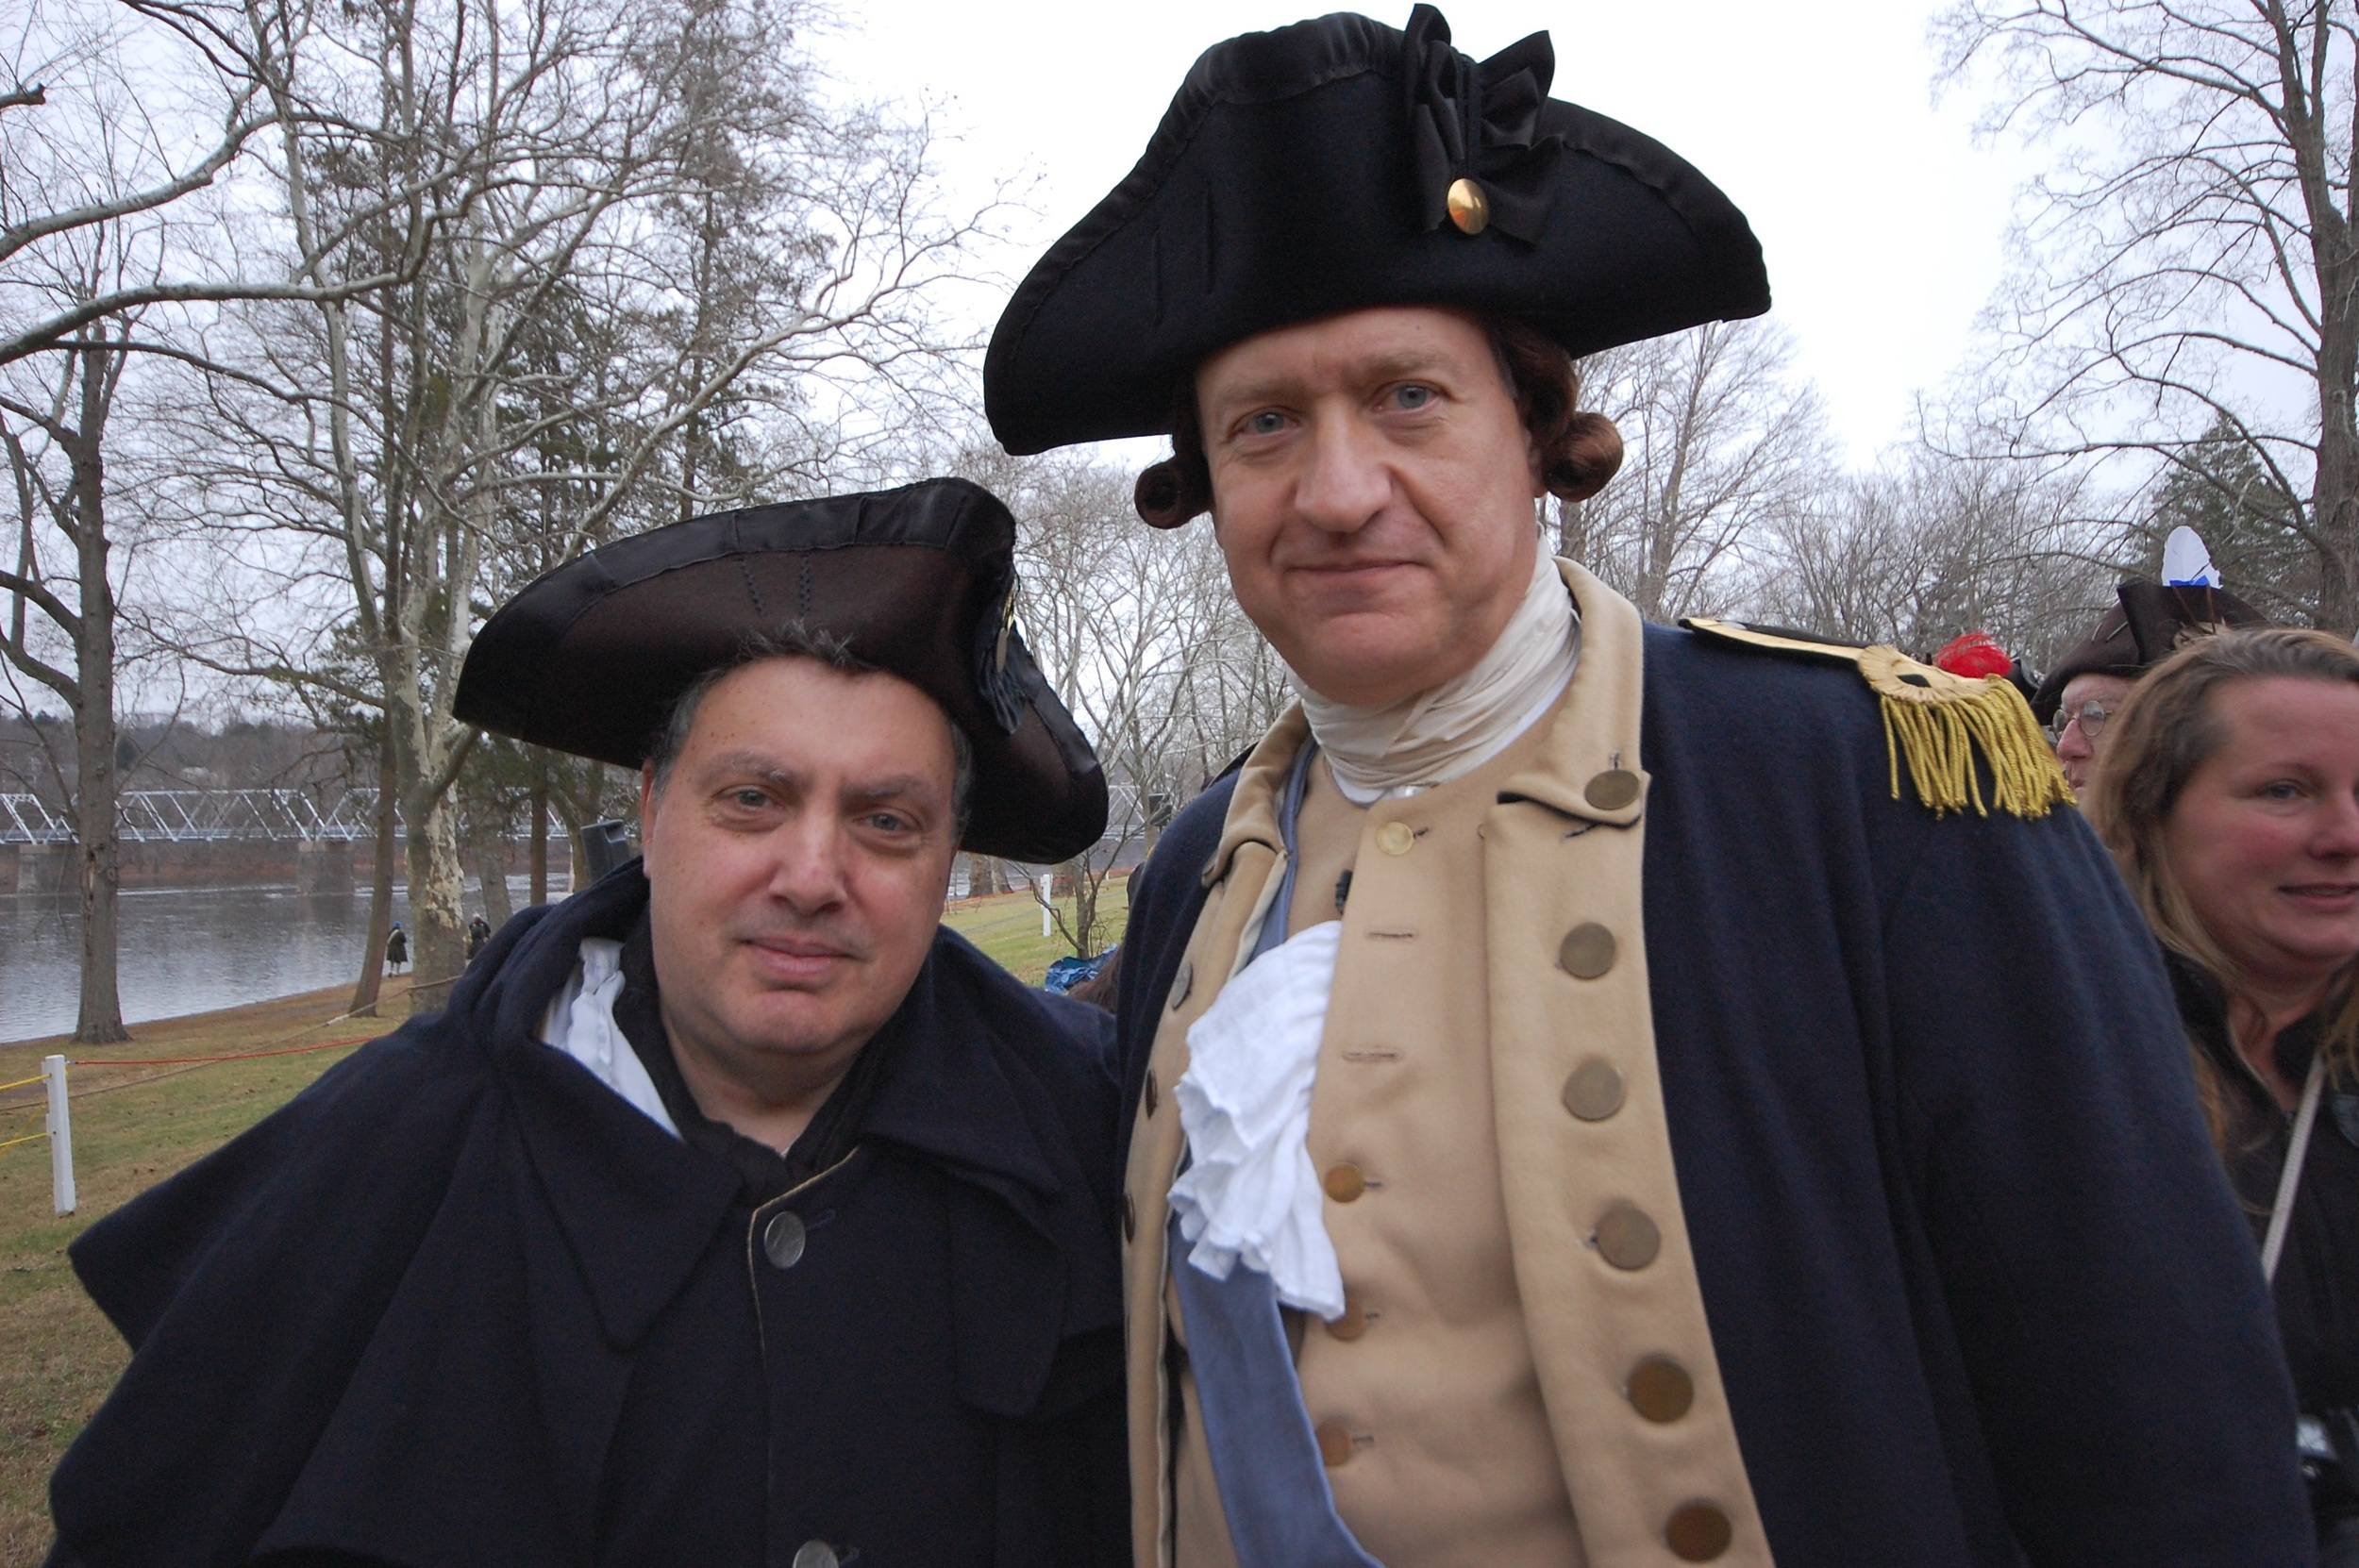 Dr. Howard Eisen (left) as John Morgan, with His Excellency General George Washington.